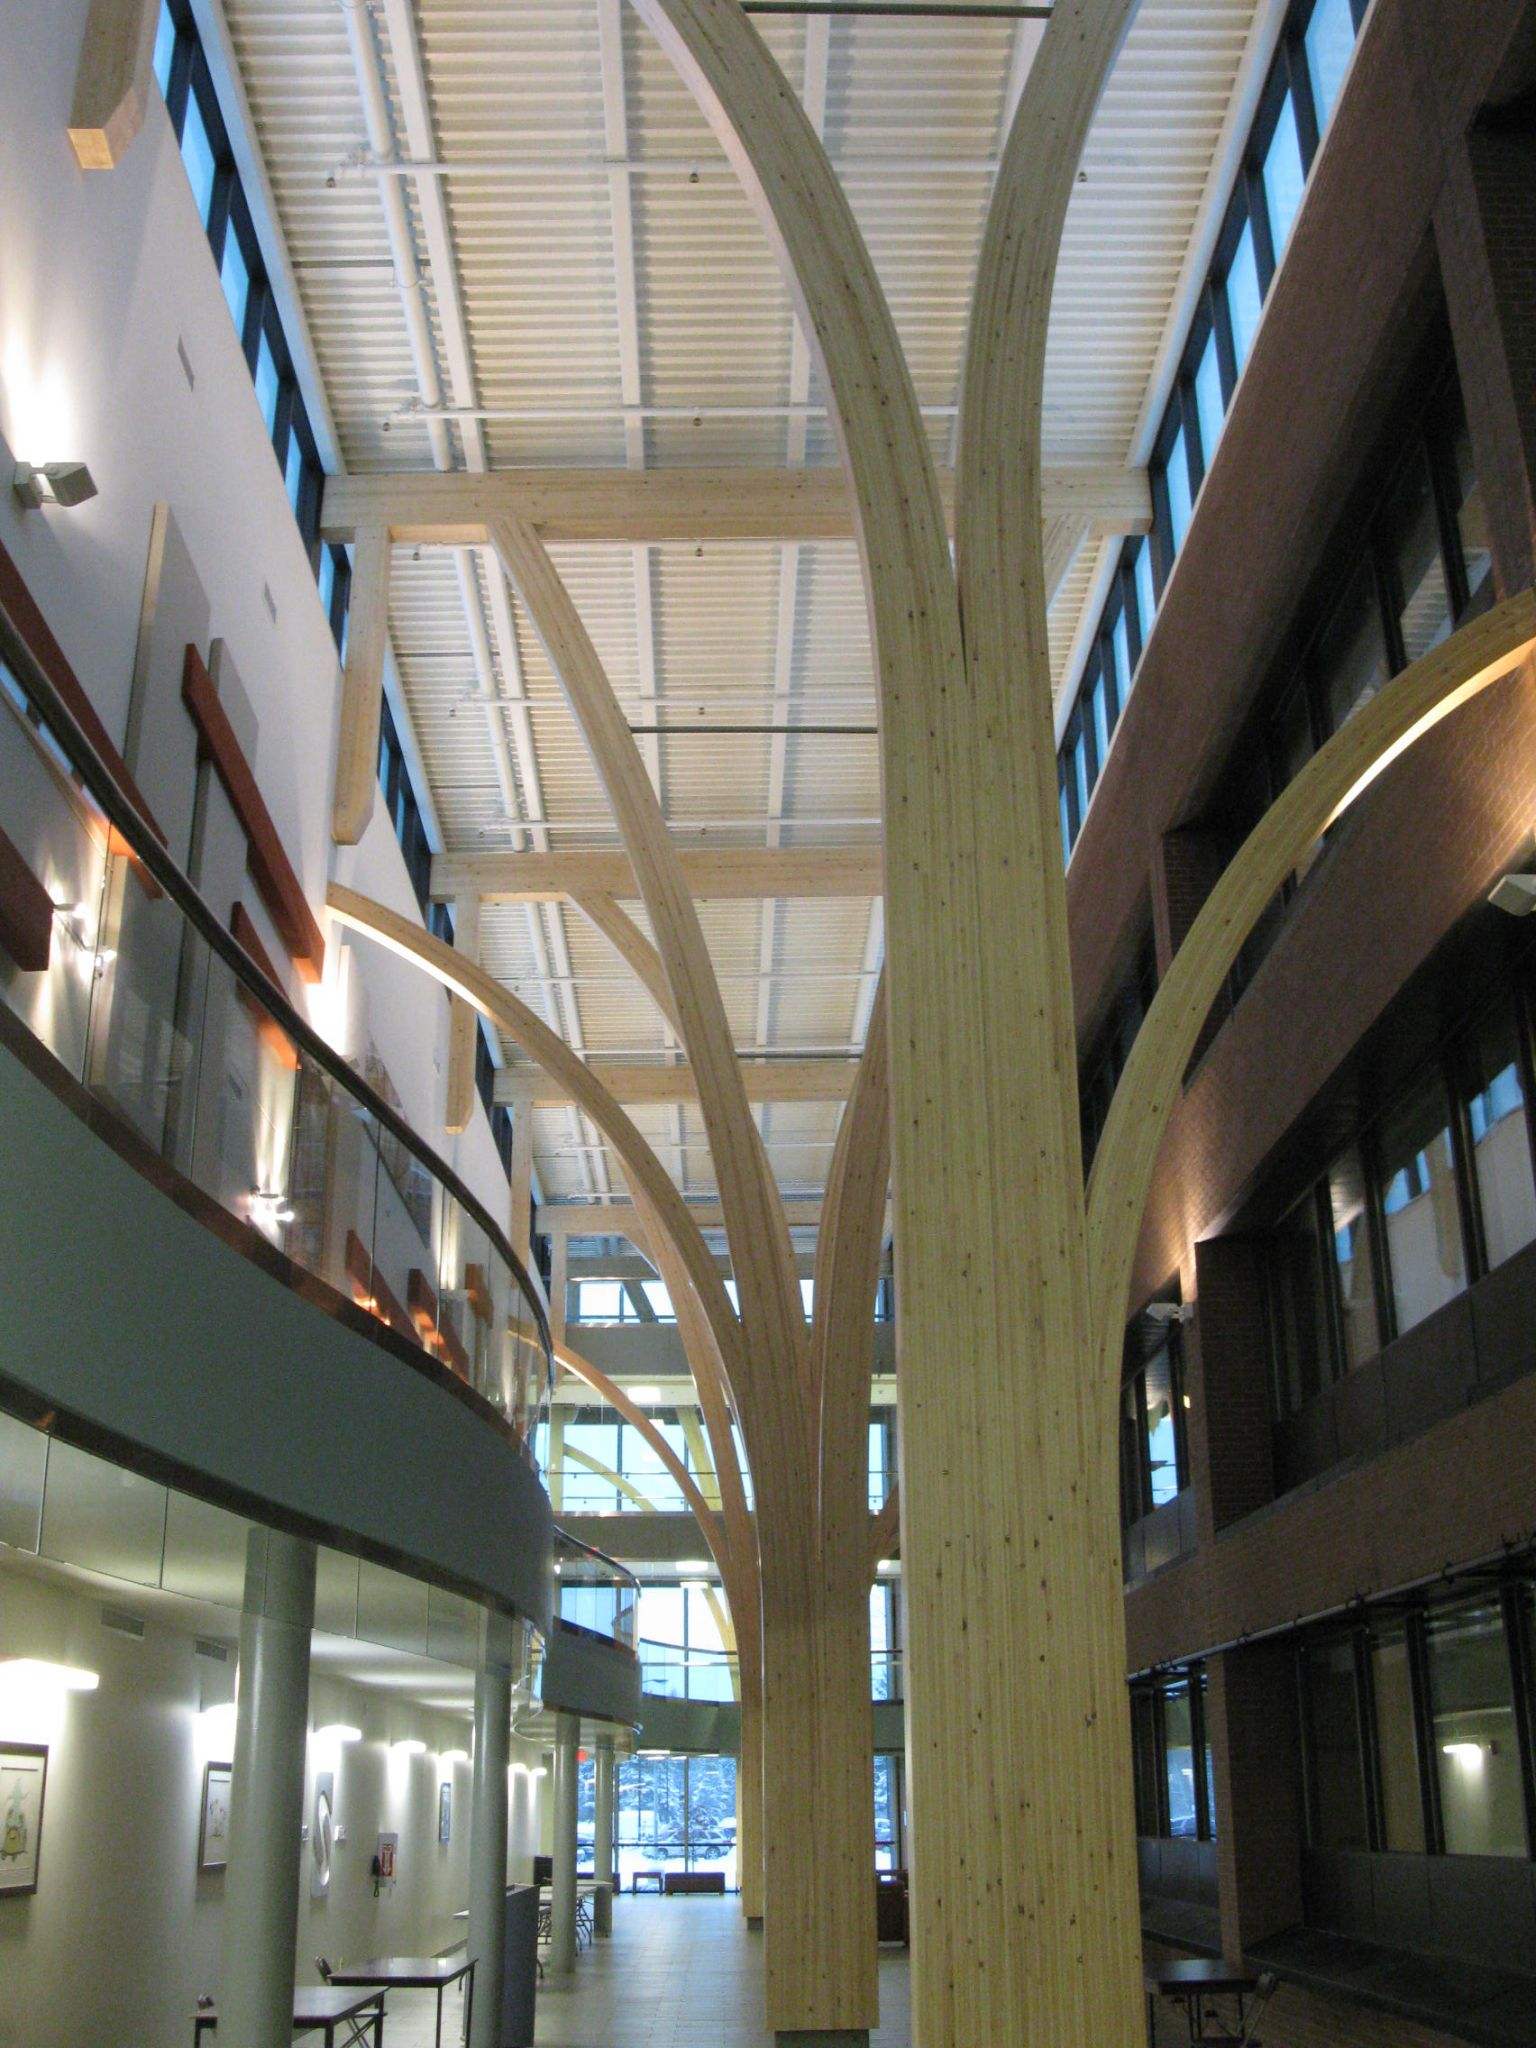 Glued-laminated (glulam) timber, protected by early-suppression, fastresponse (ESFR) sprinklers, was specifi ed for Confederation College (Thunder Bay, Ont.), designed by Form Architecture Engineering.